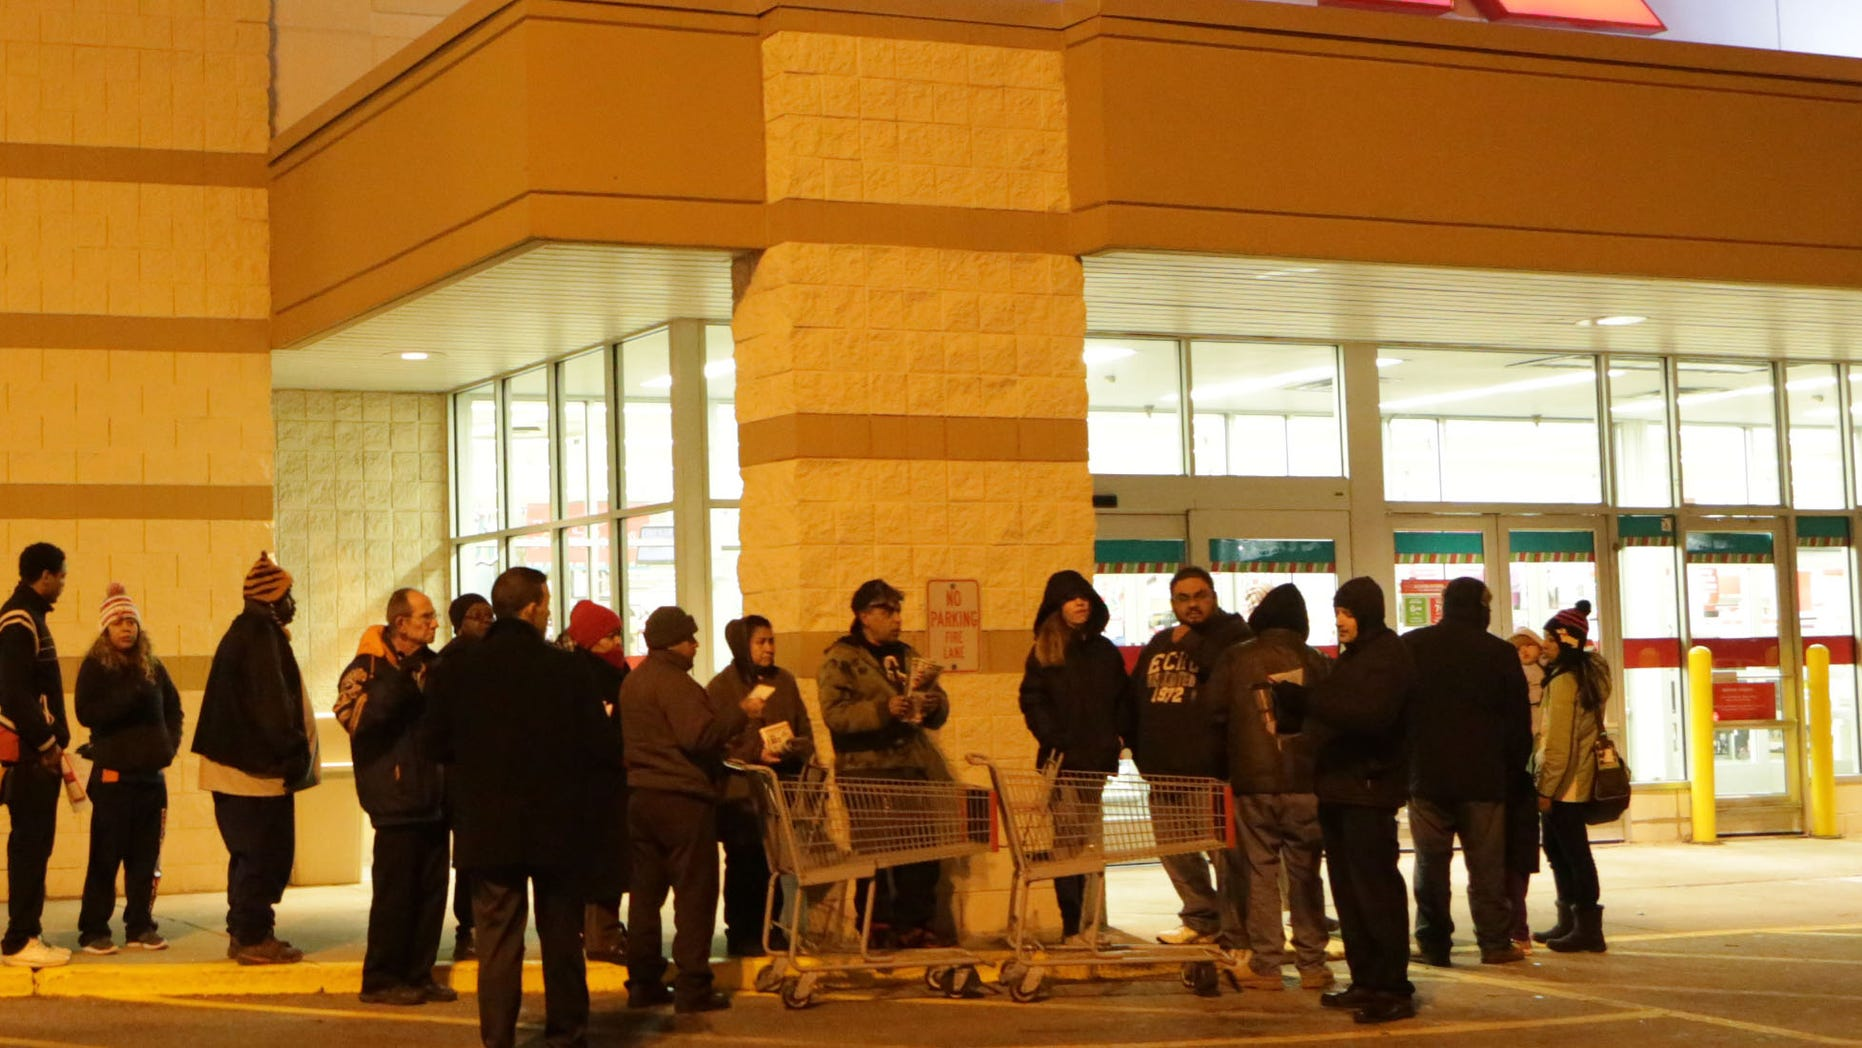 Nov. 27, 2014: Customers line up outside a Kmart store on Thanksgiving morning in Chicago, Ill.